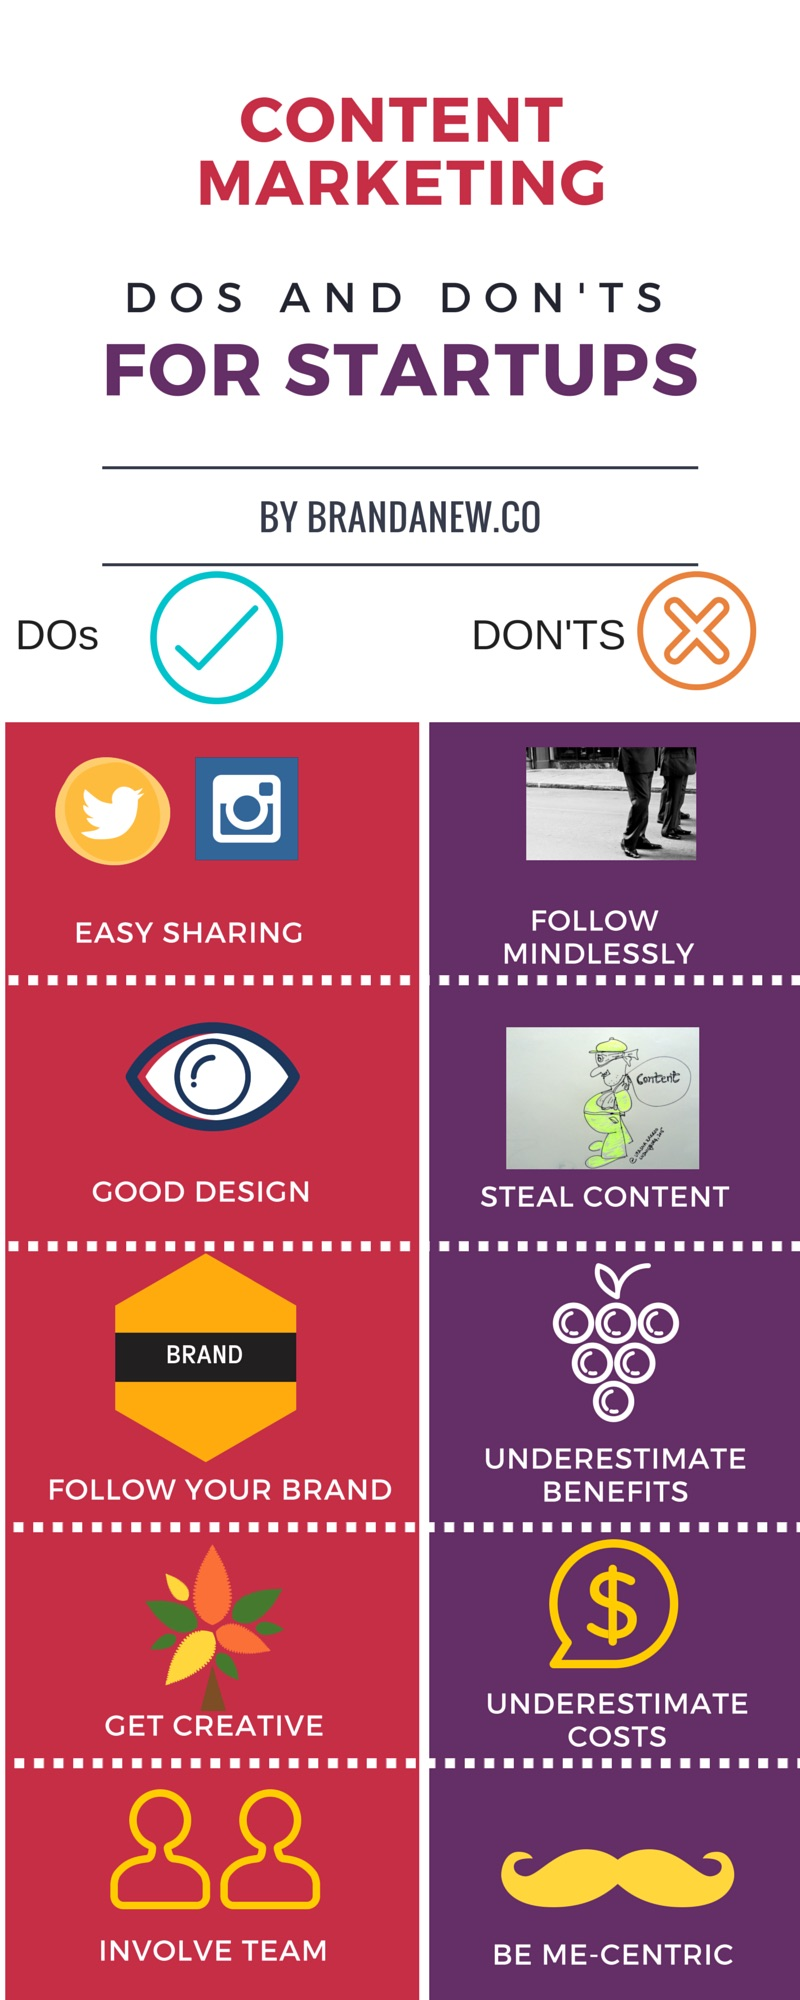 Content Marketing DOs and Dont's for Startups